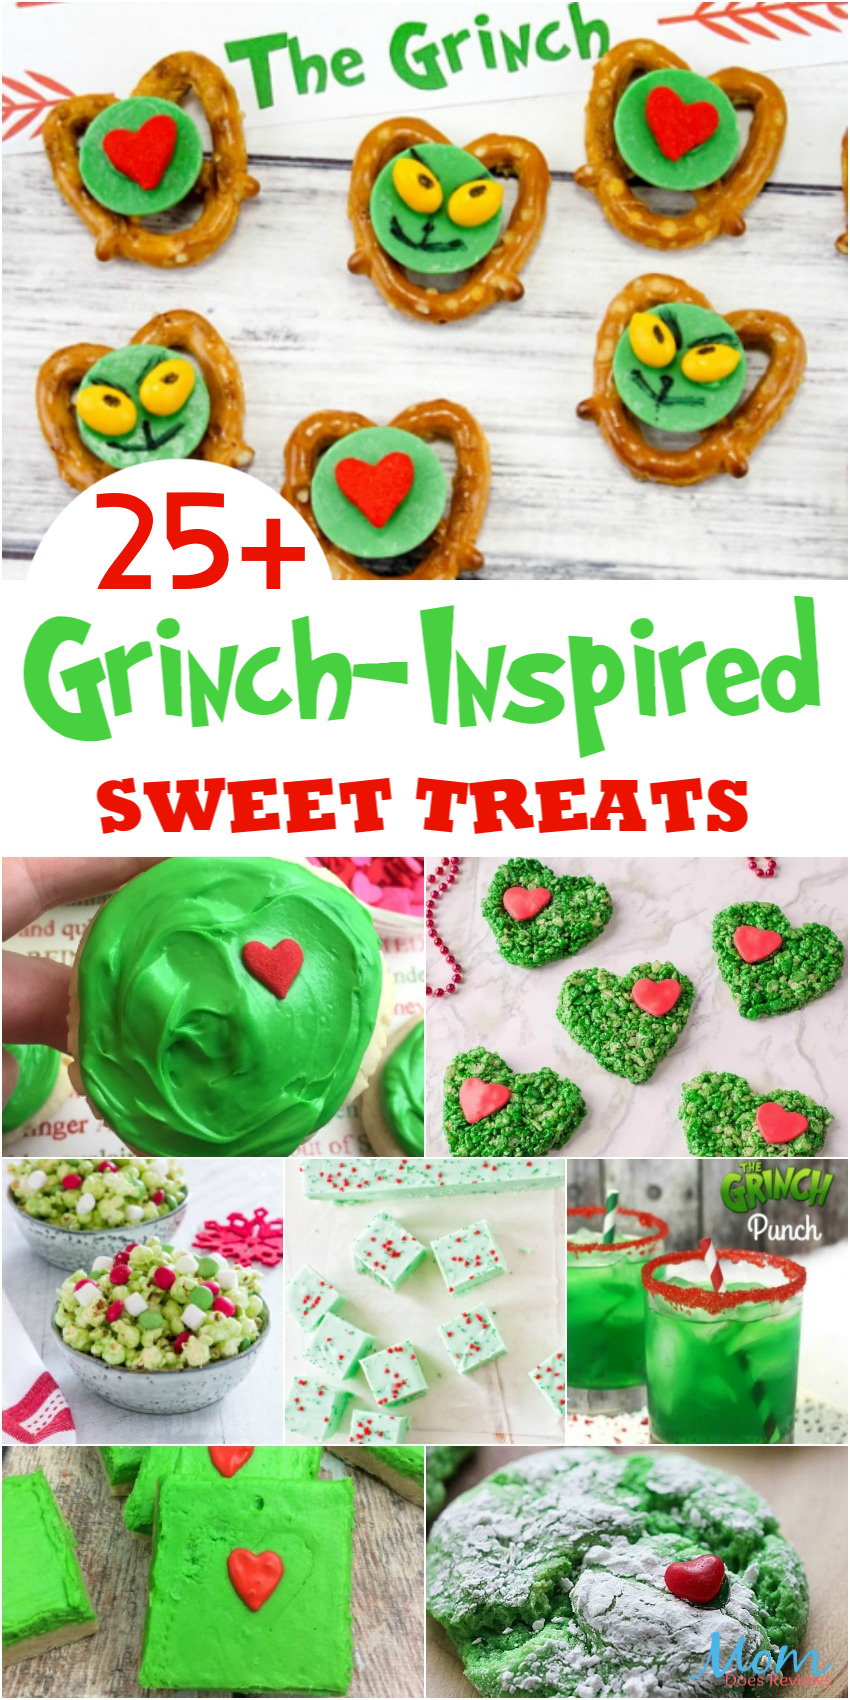 25+ Grinch-Inspired Sweet Treats that Will Melt the Meanest Heart! #recipes #funfood #christmas